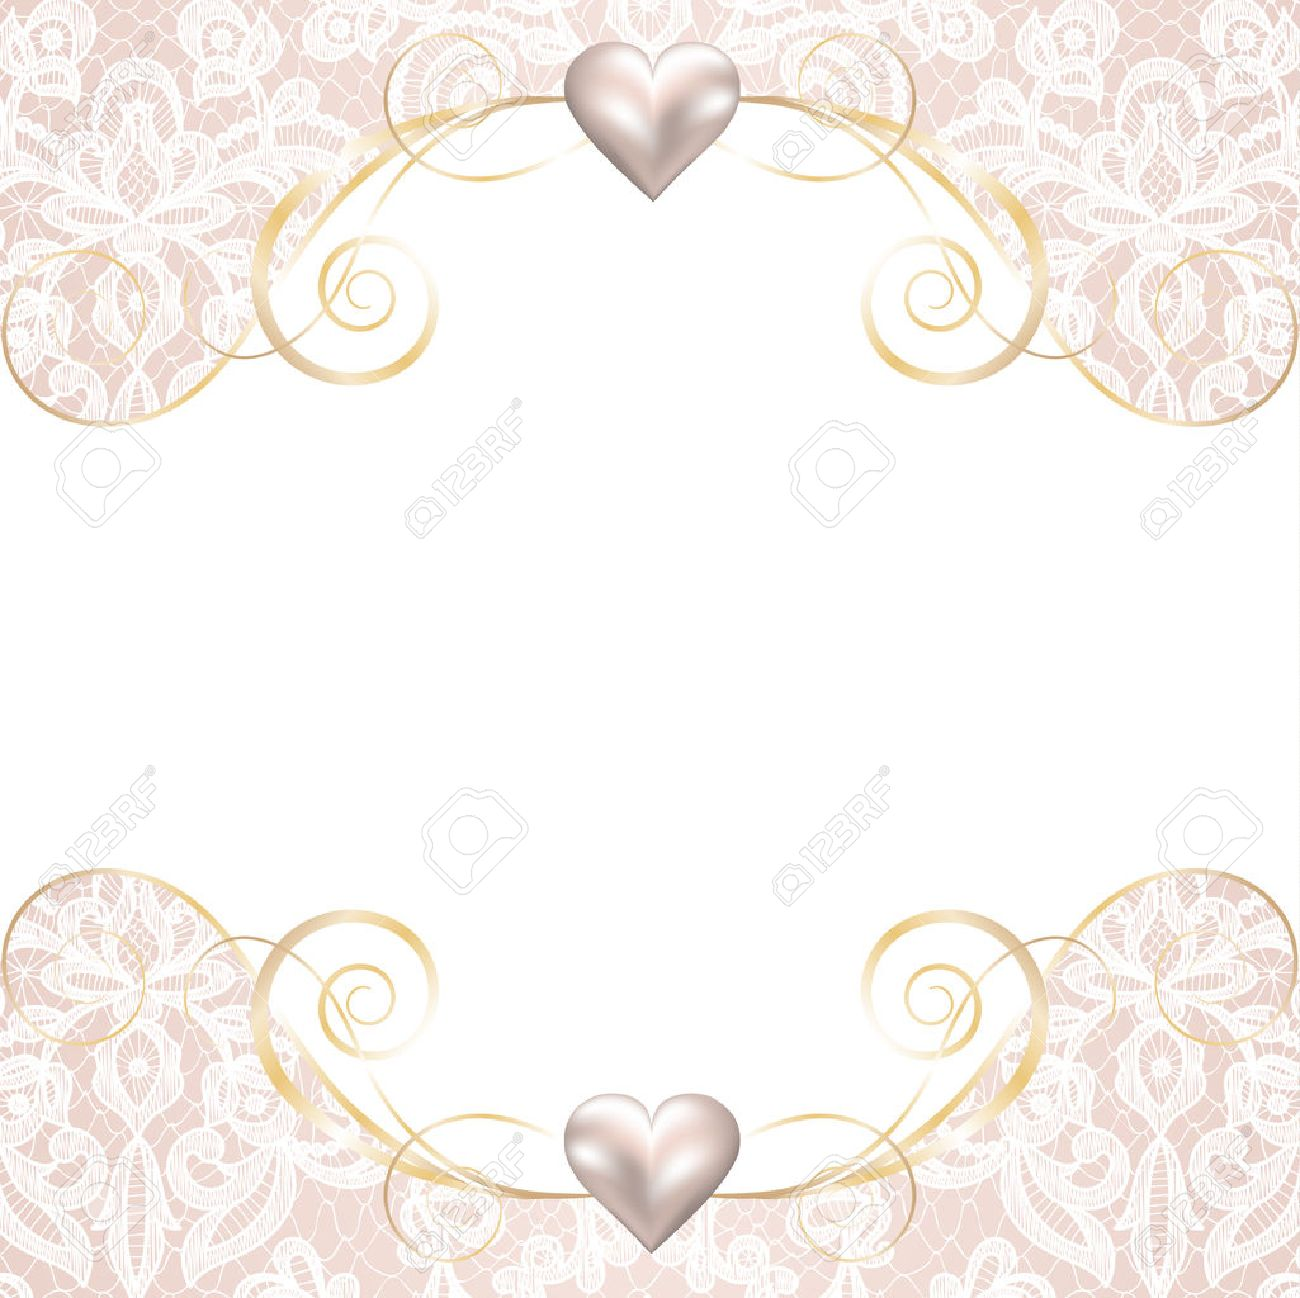 Wedding invitation or greeting card with pearl frame on lace background Stock Vector - 42530165